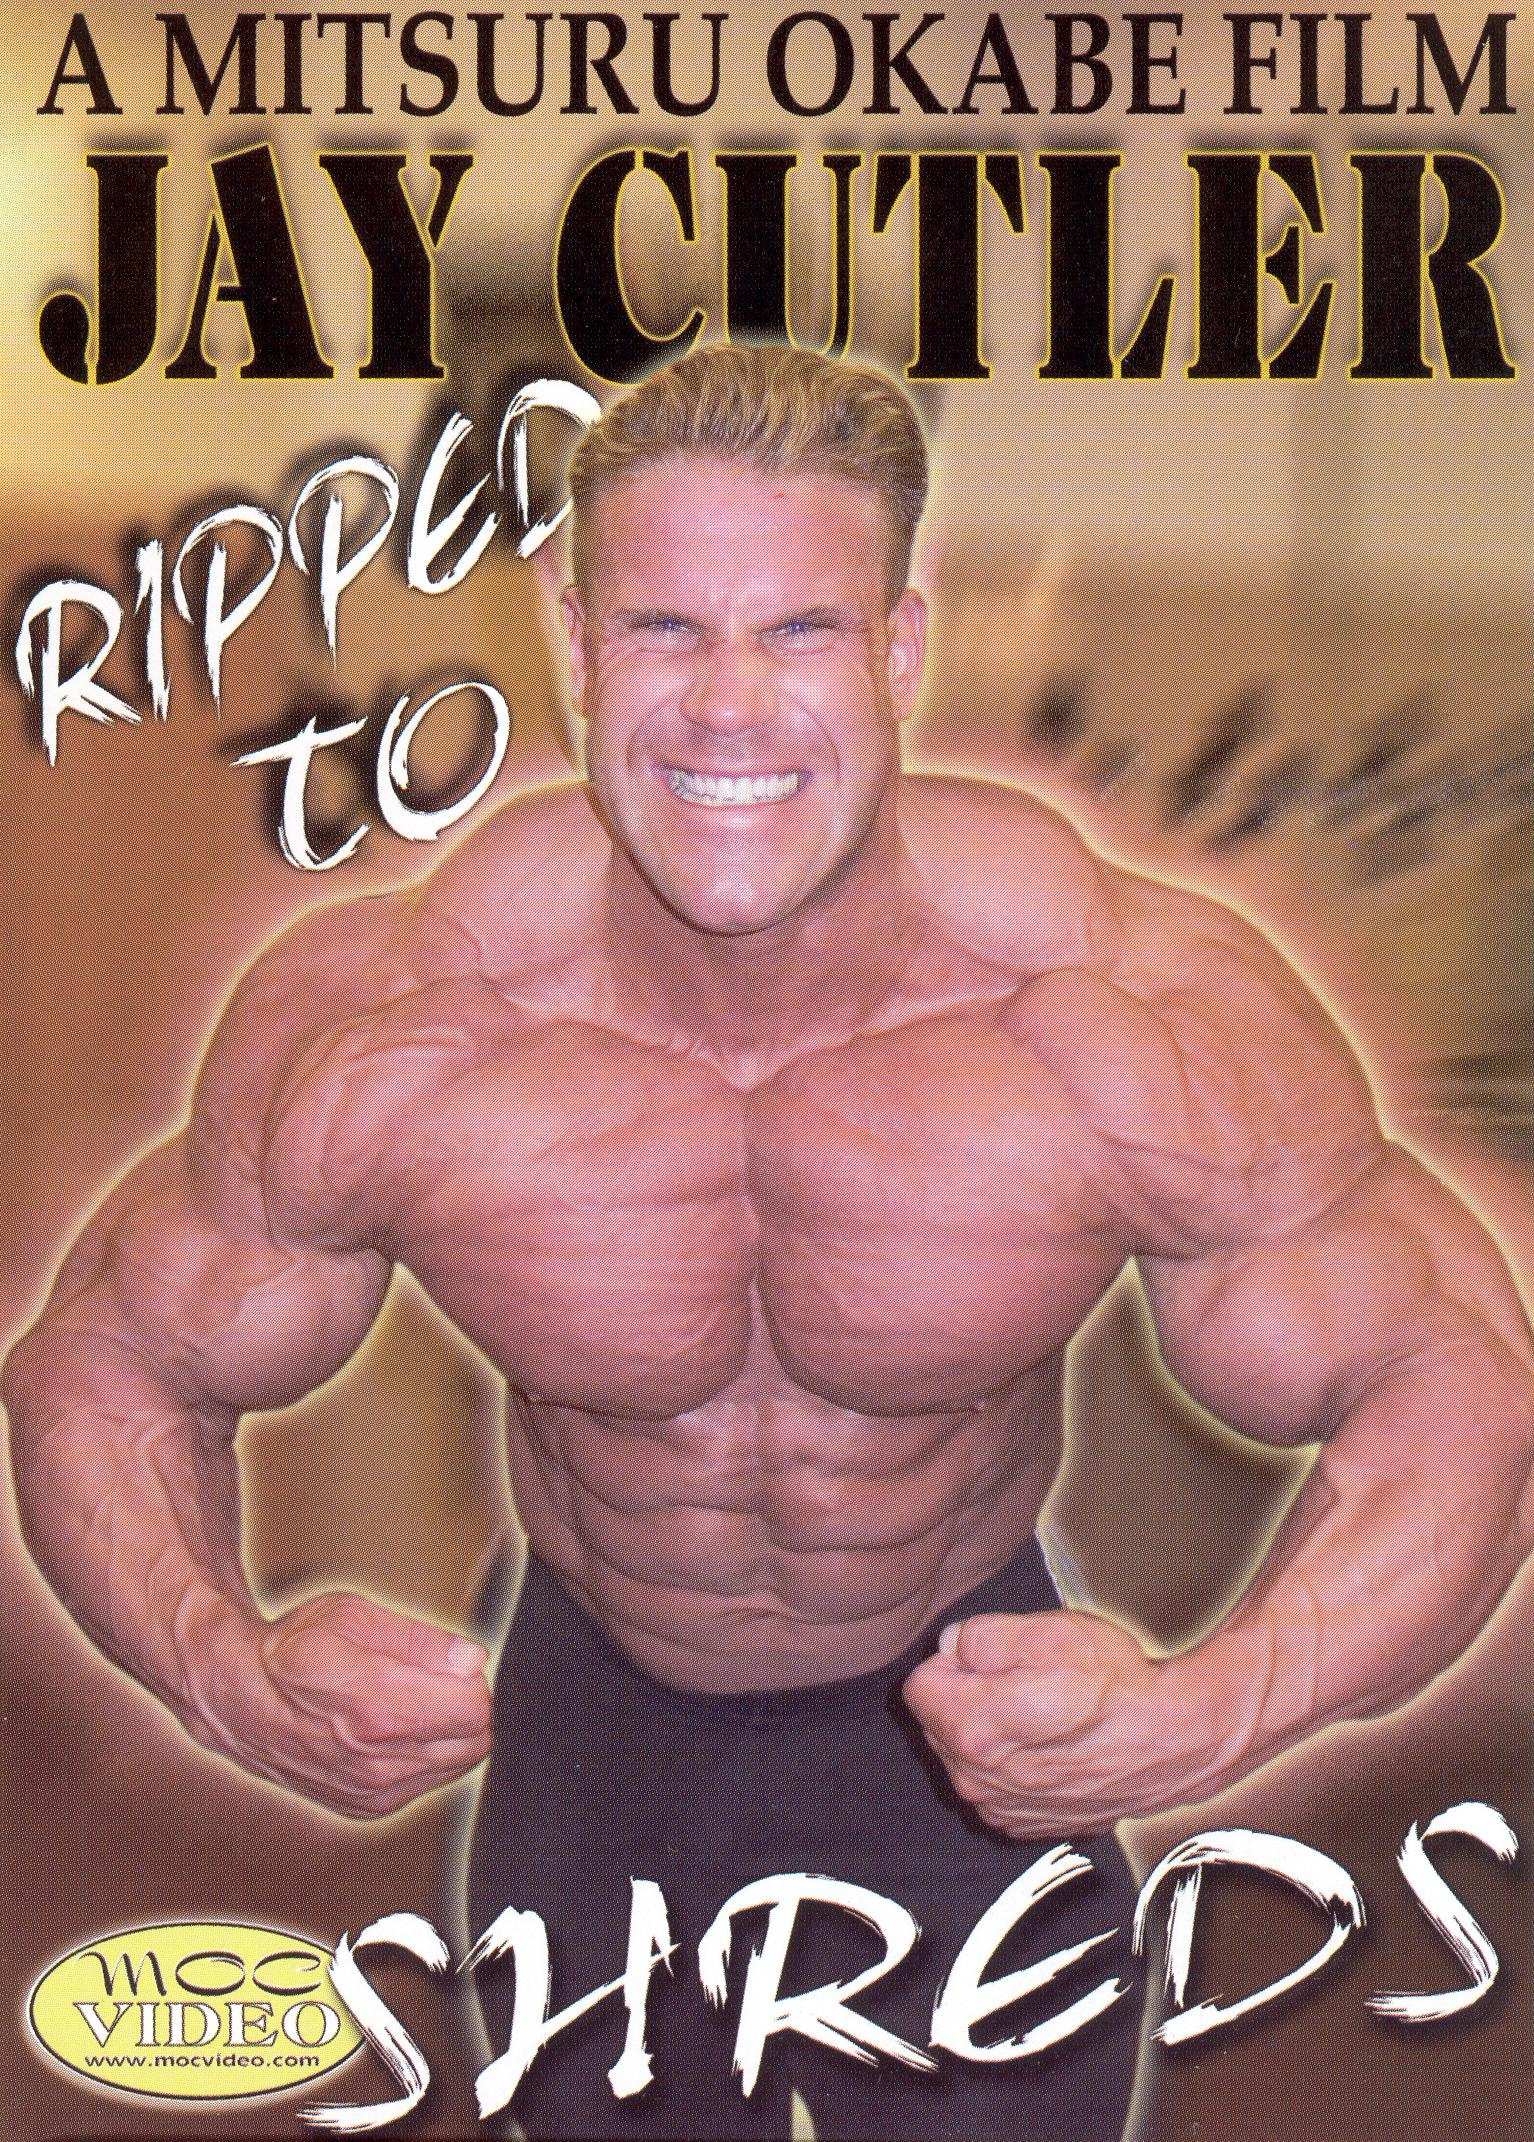 Jay Cutler: Ripped To Shreds